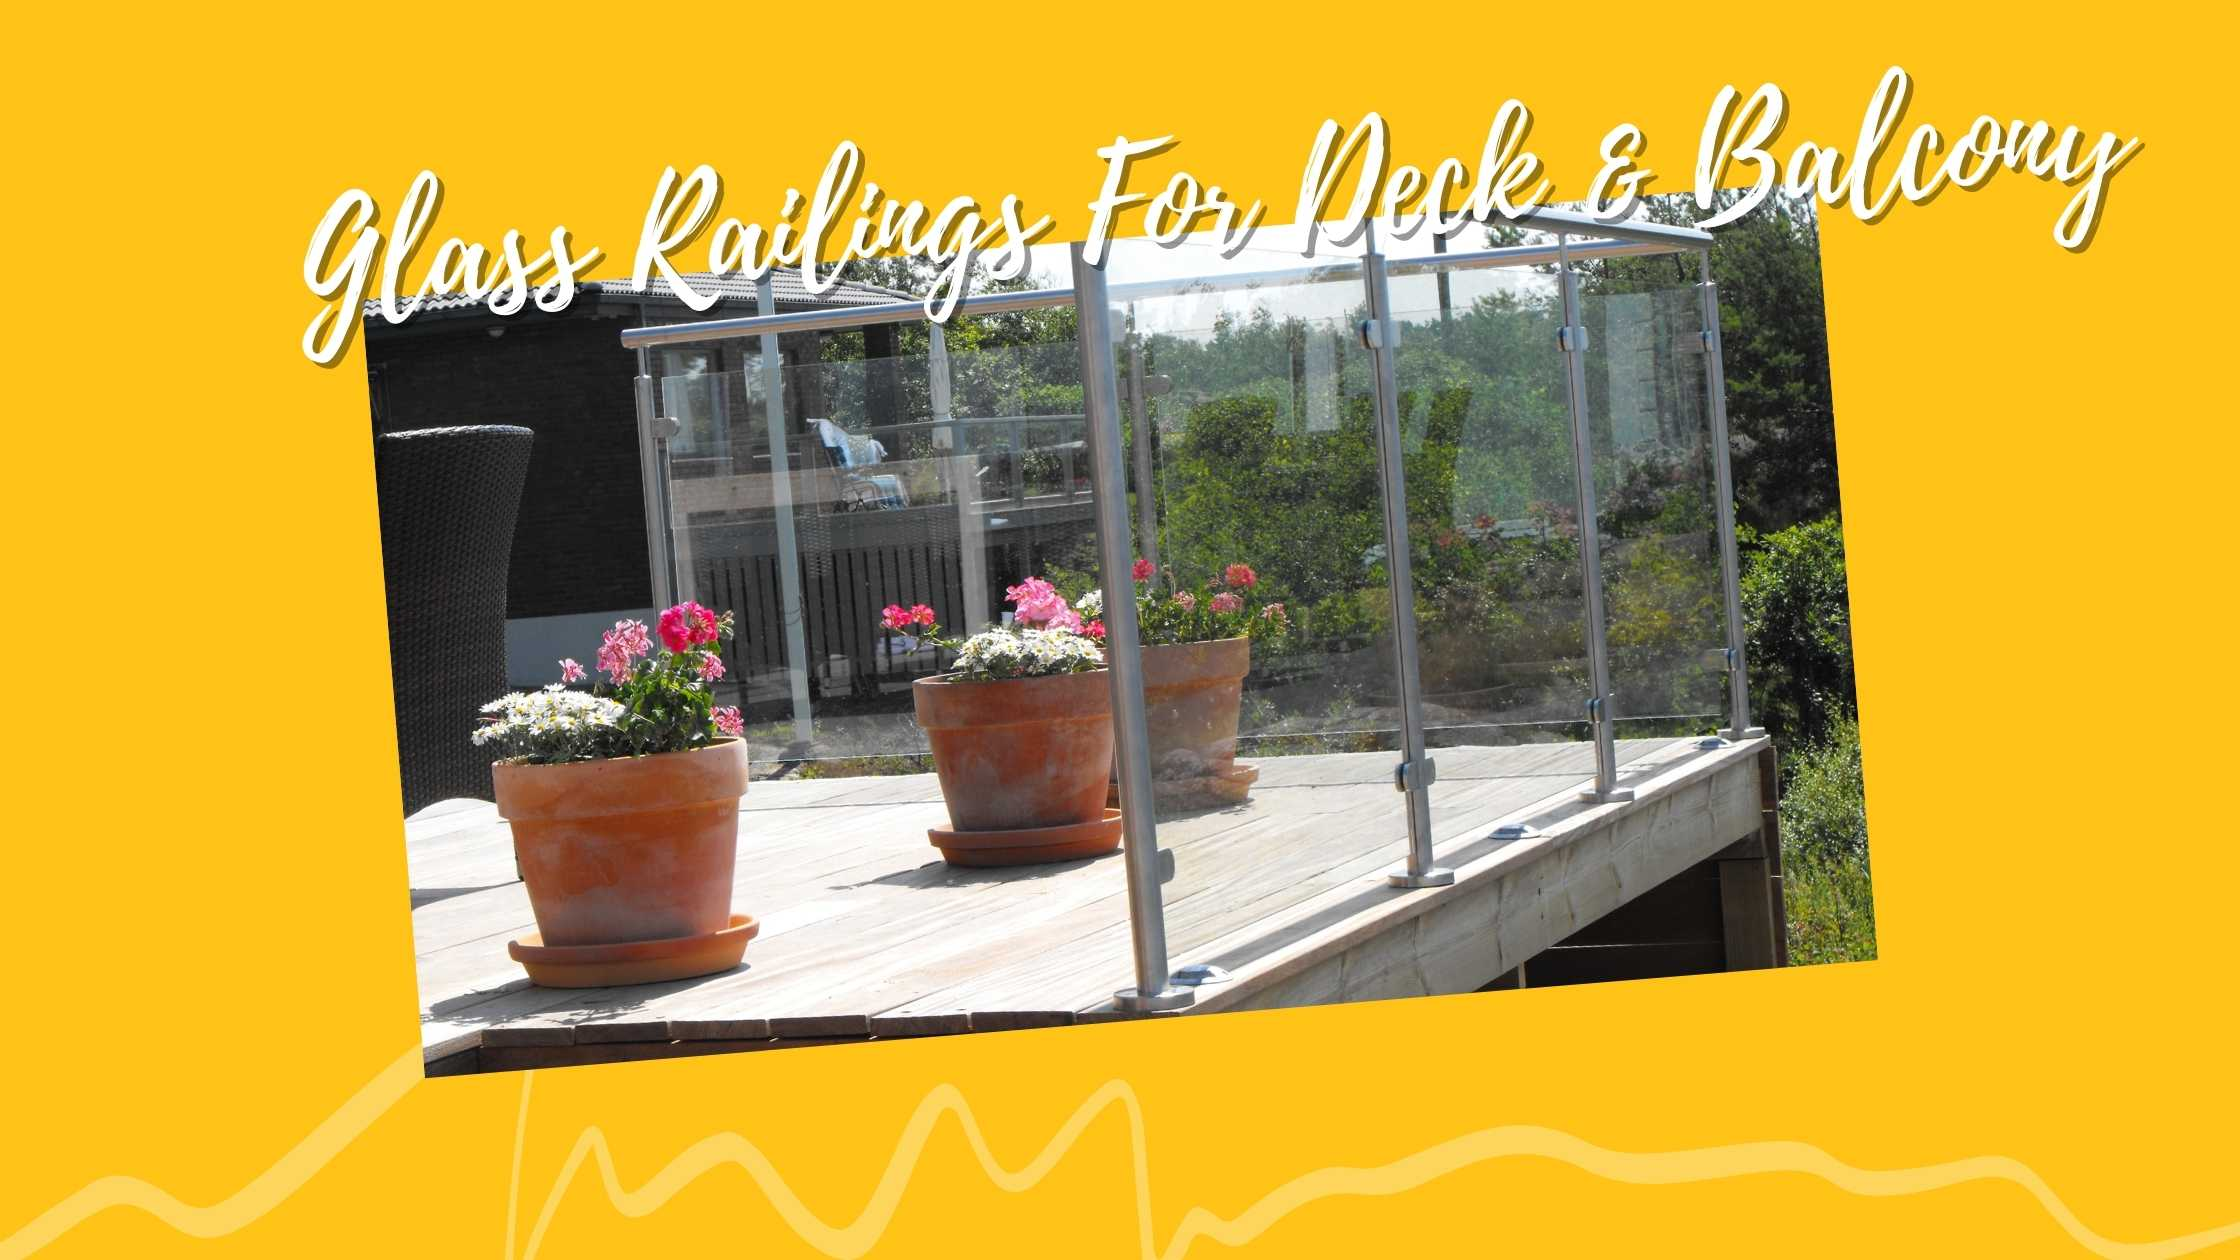 Glass railings for deck & balcony The various options around the house